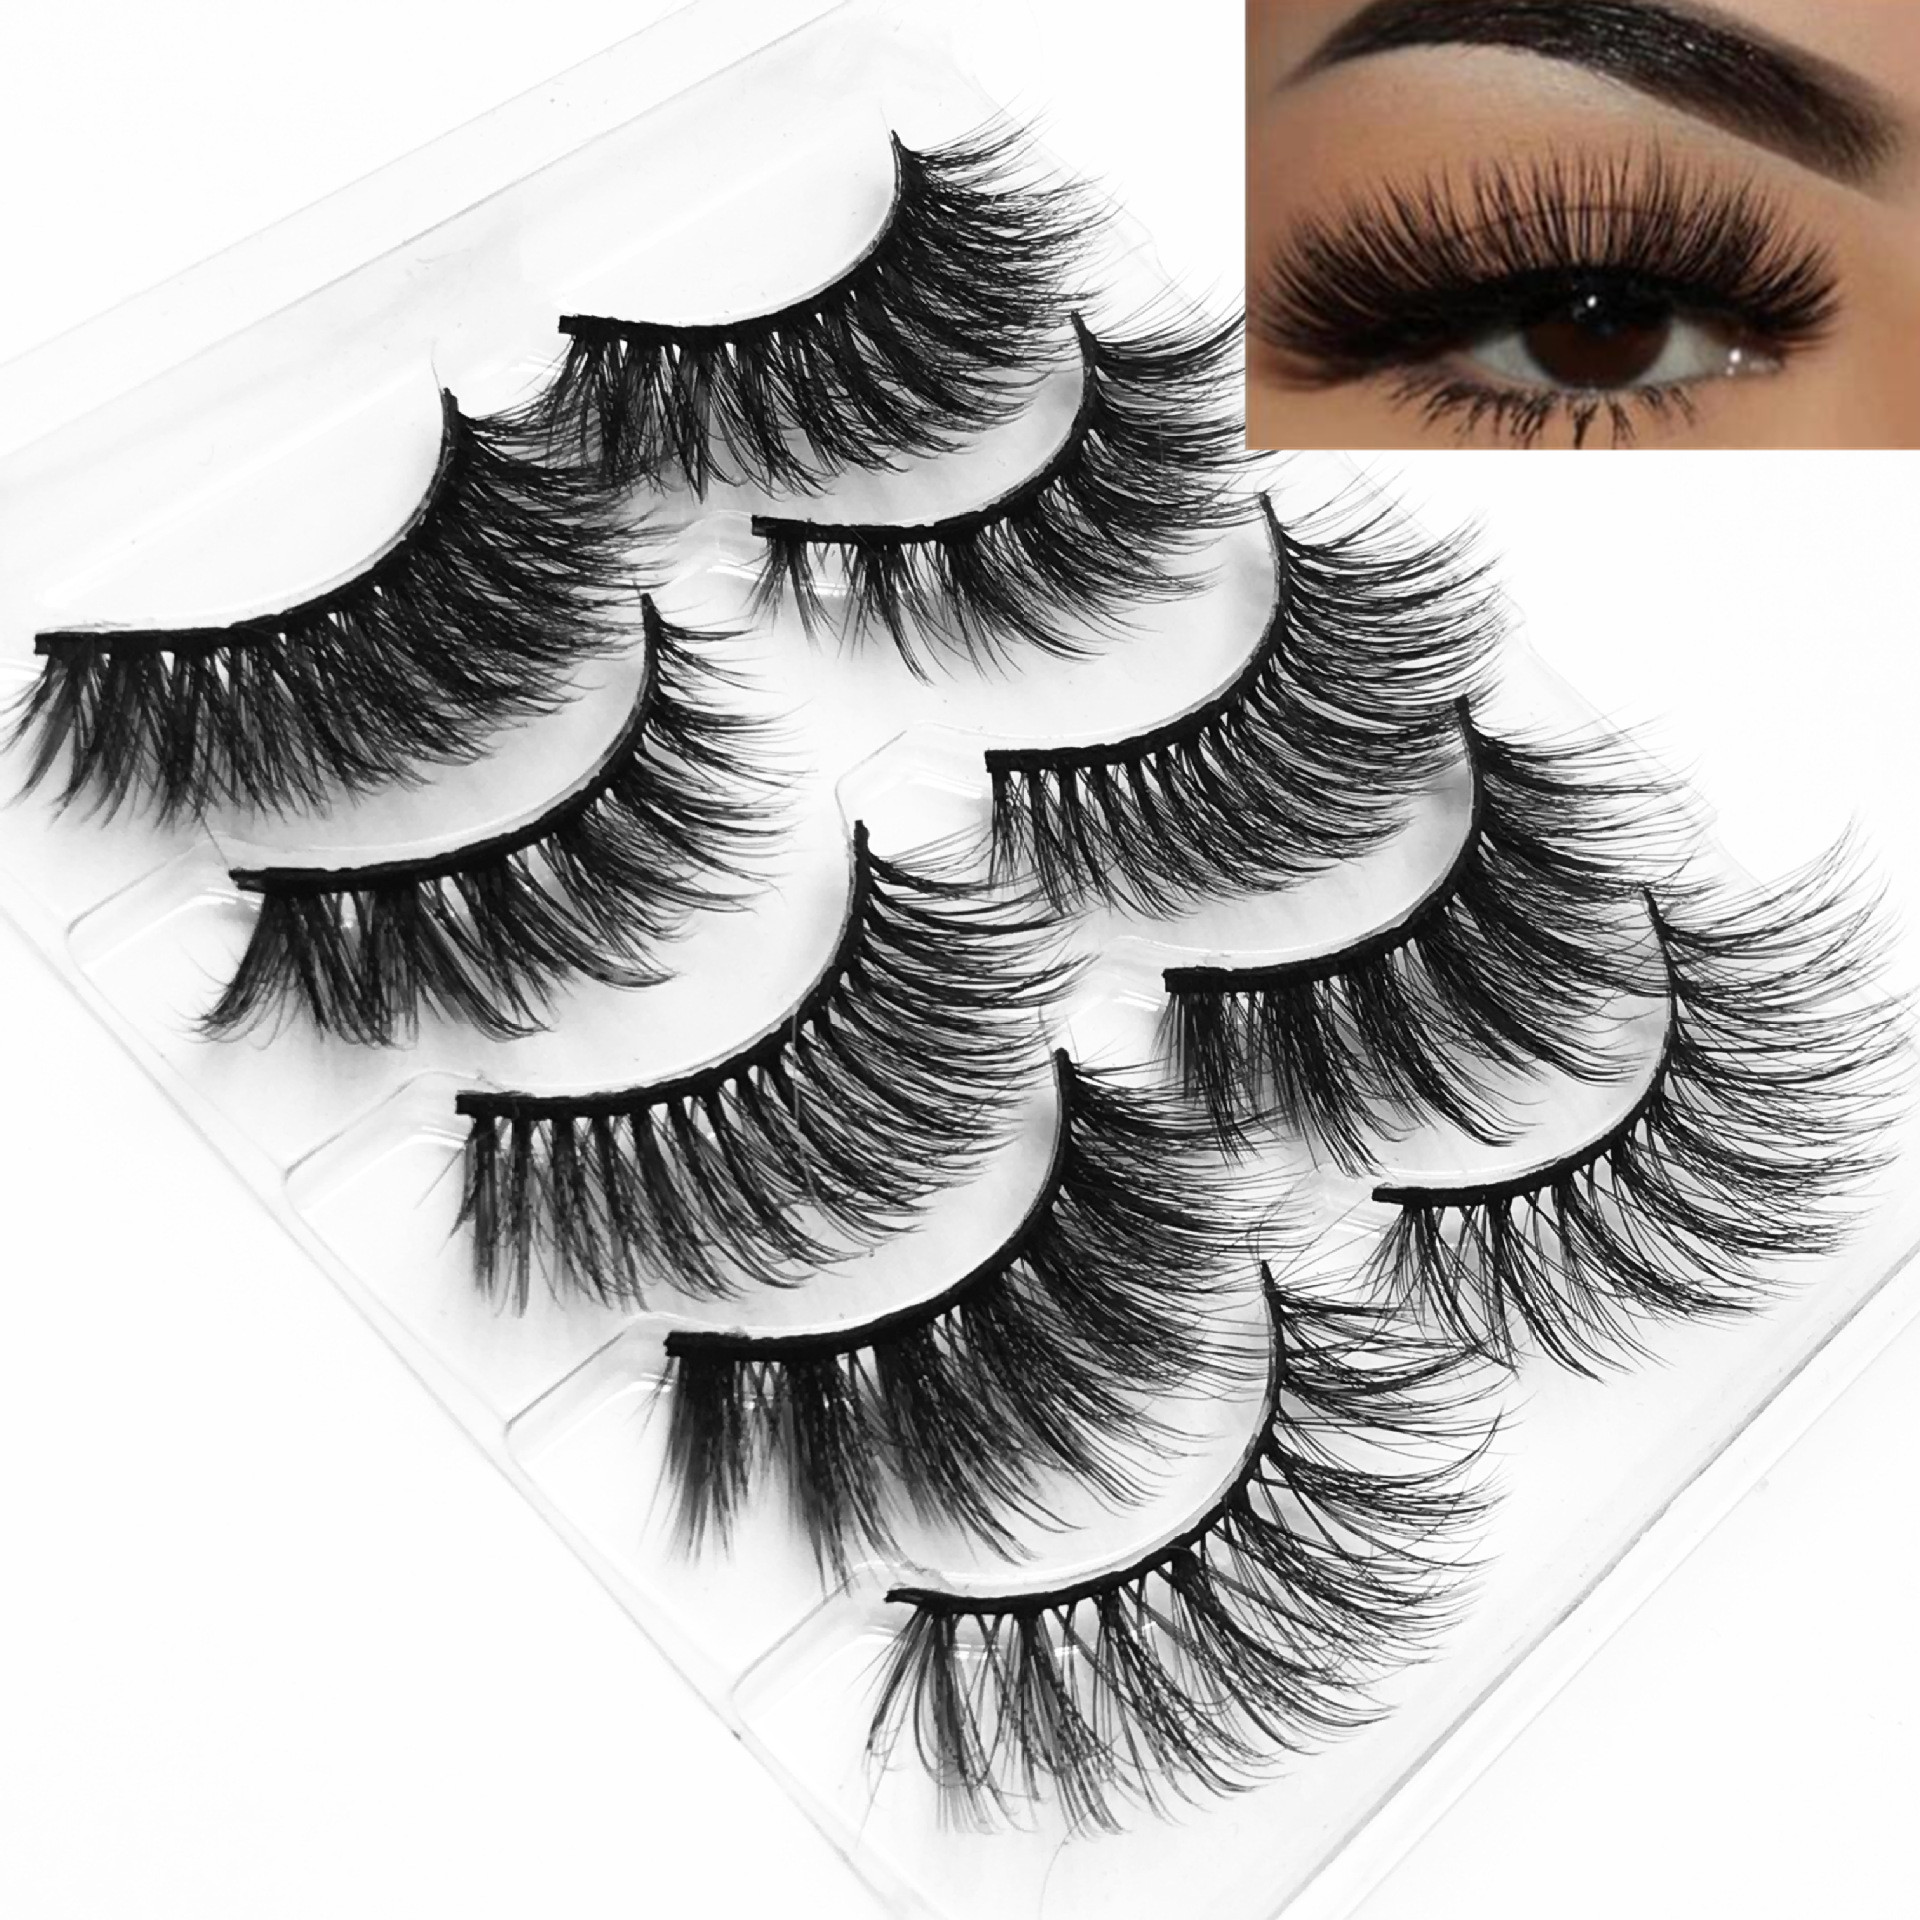 Best Eyelashes 5 Pairs 3d Lashes Mink Eyelashes Handmade False Eyelashes Soft Fluffy Natural Eyelashes 3d Eyelash Extension